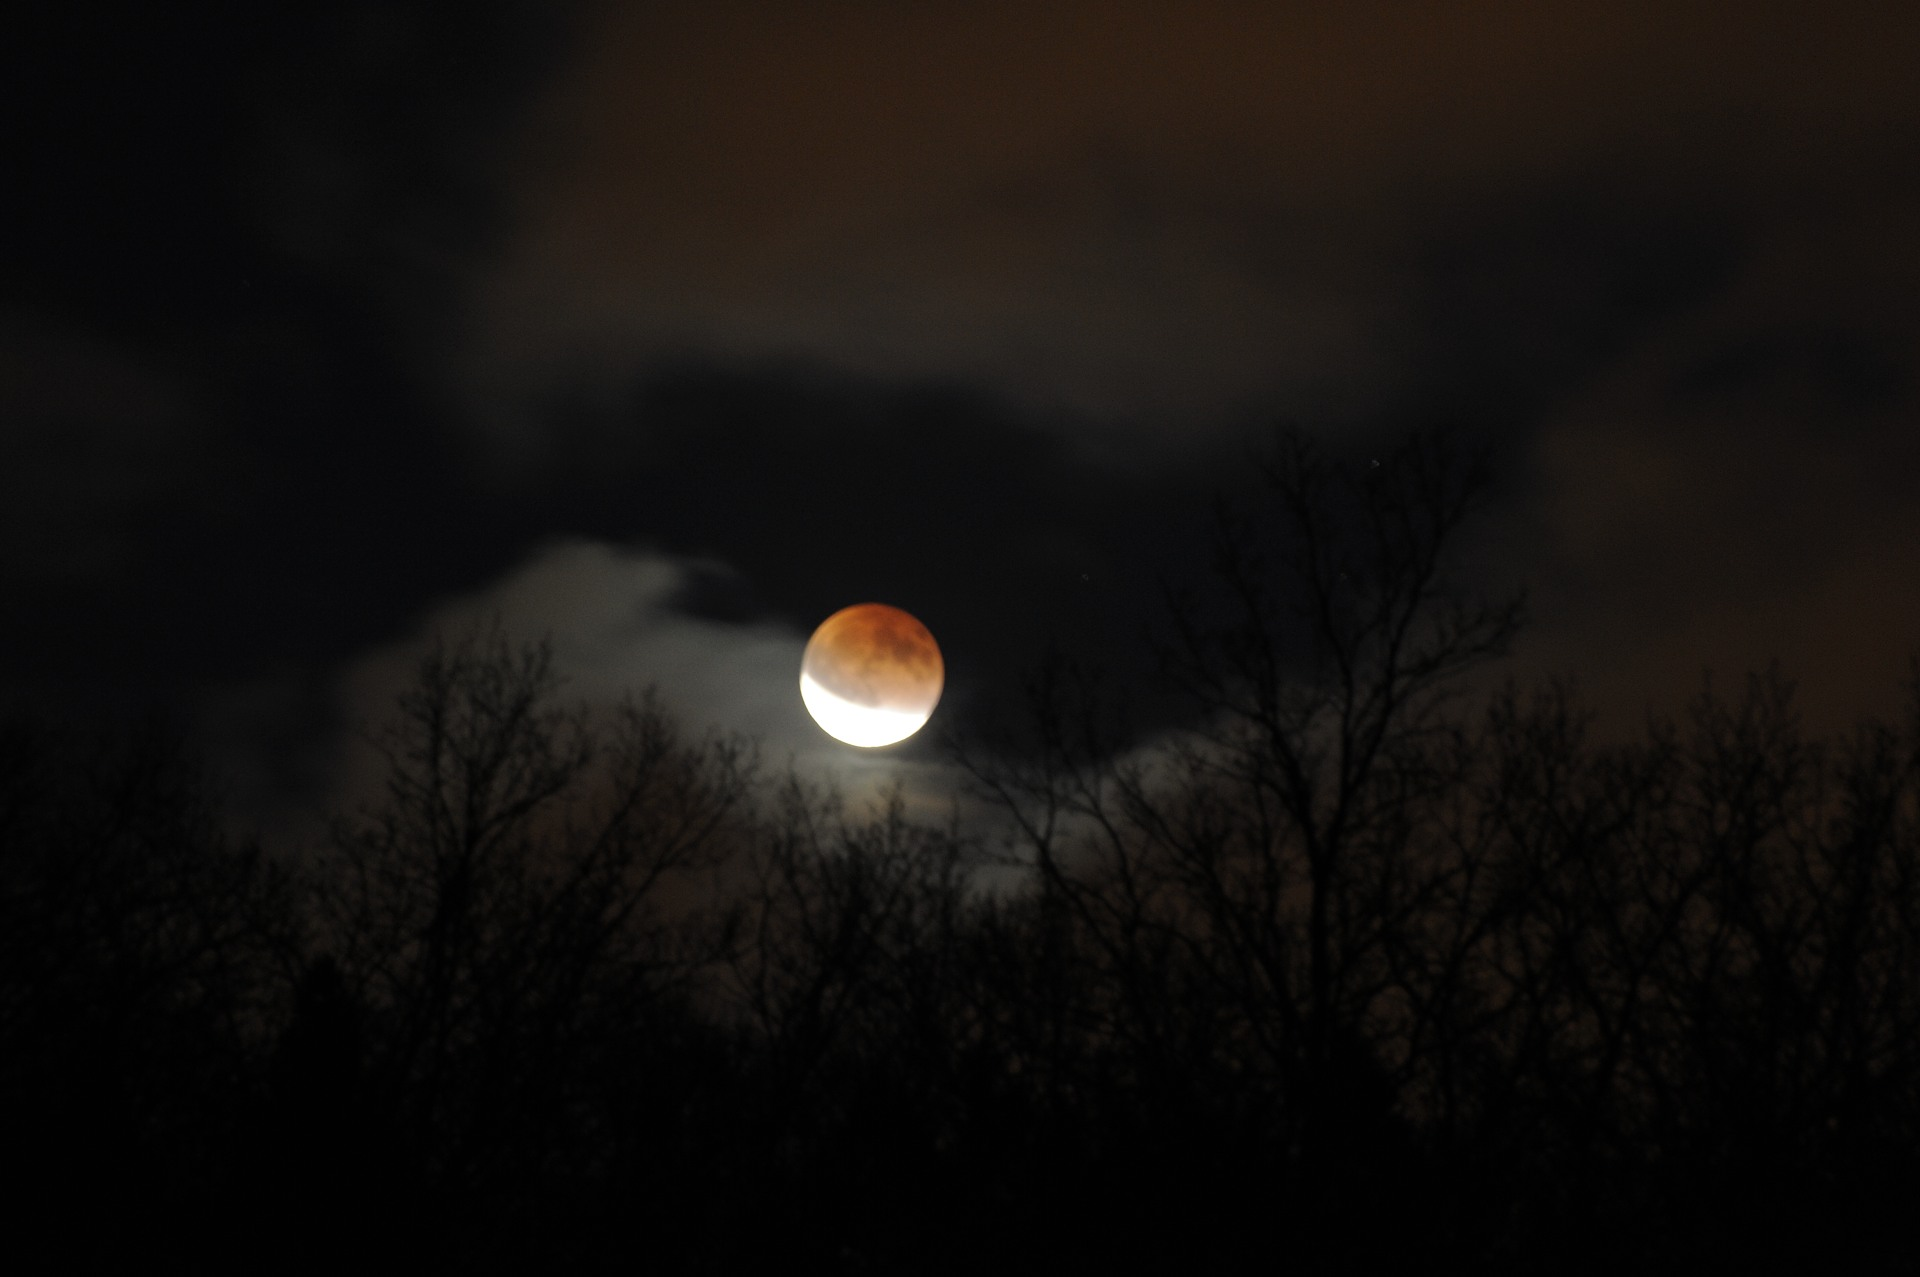 2011-12-10 Lunar Eclipse by Magnus Norden